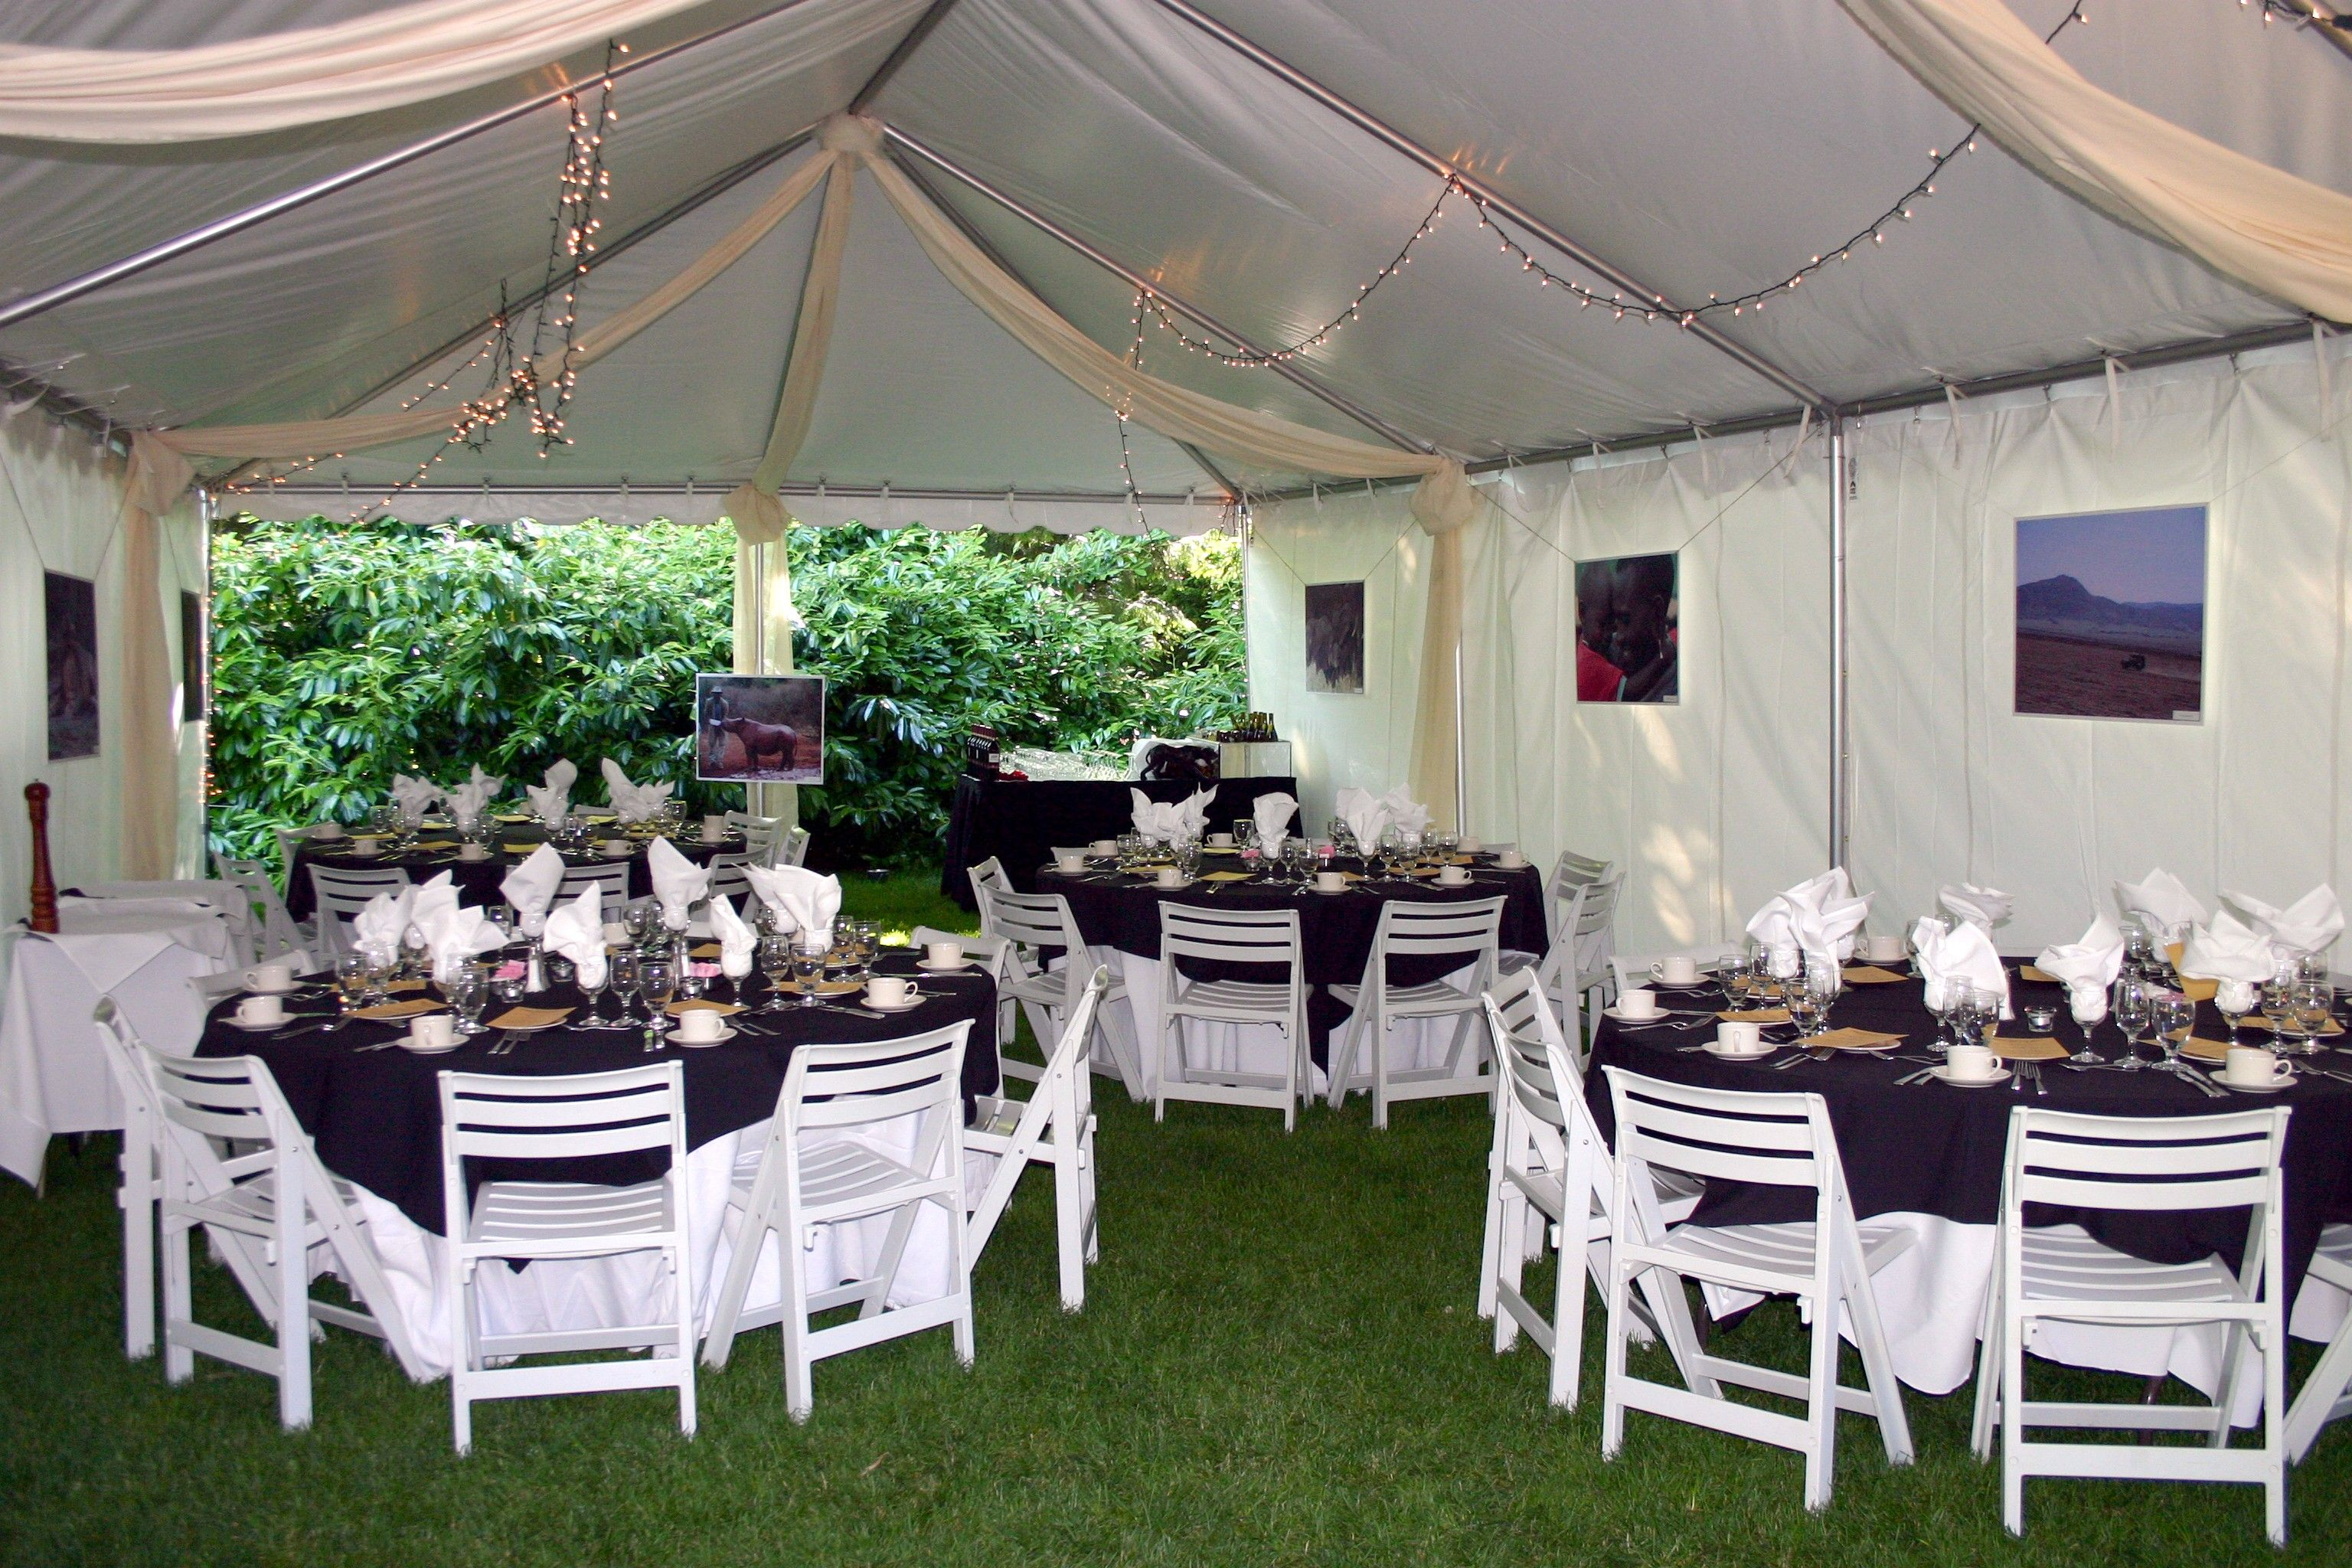 """Say """"I do"""" under the huge old-growth beech trees on the lawn of Beech Grove. This naturally secluded space is perfect for  your outdoor ceremony or reception!   www.zoo.org/planyourevent"""